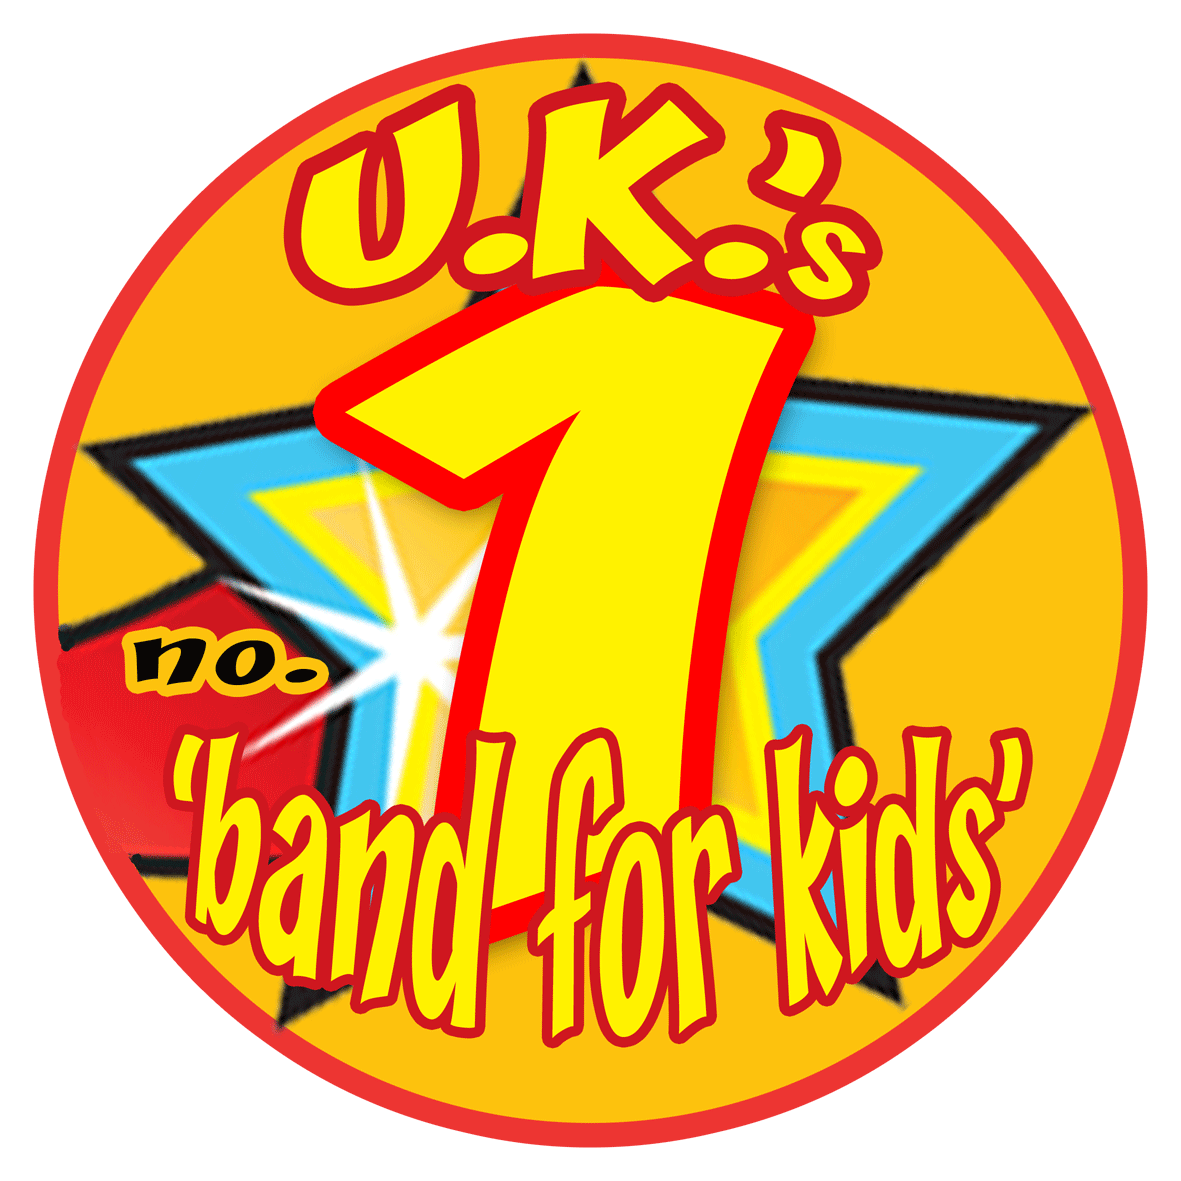 uk's no1 band for kids